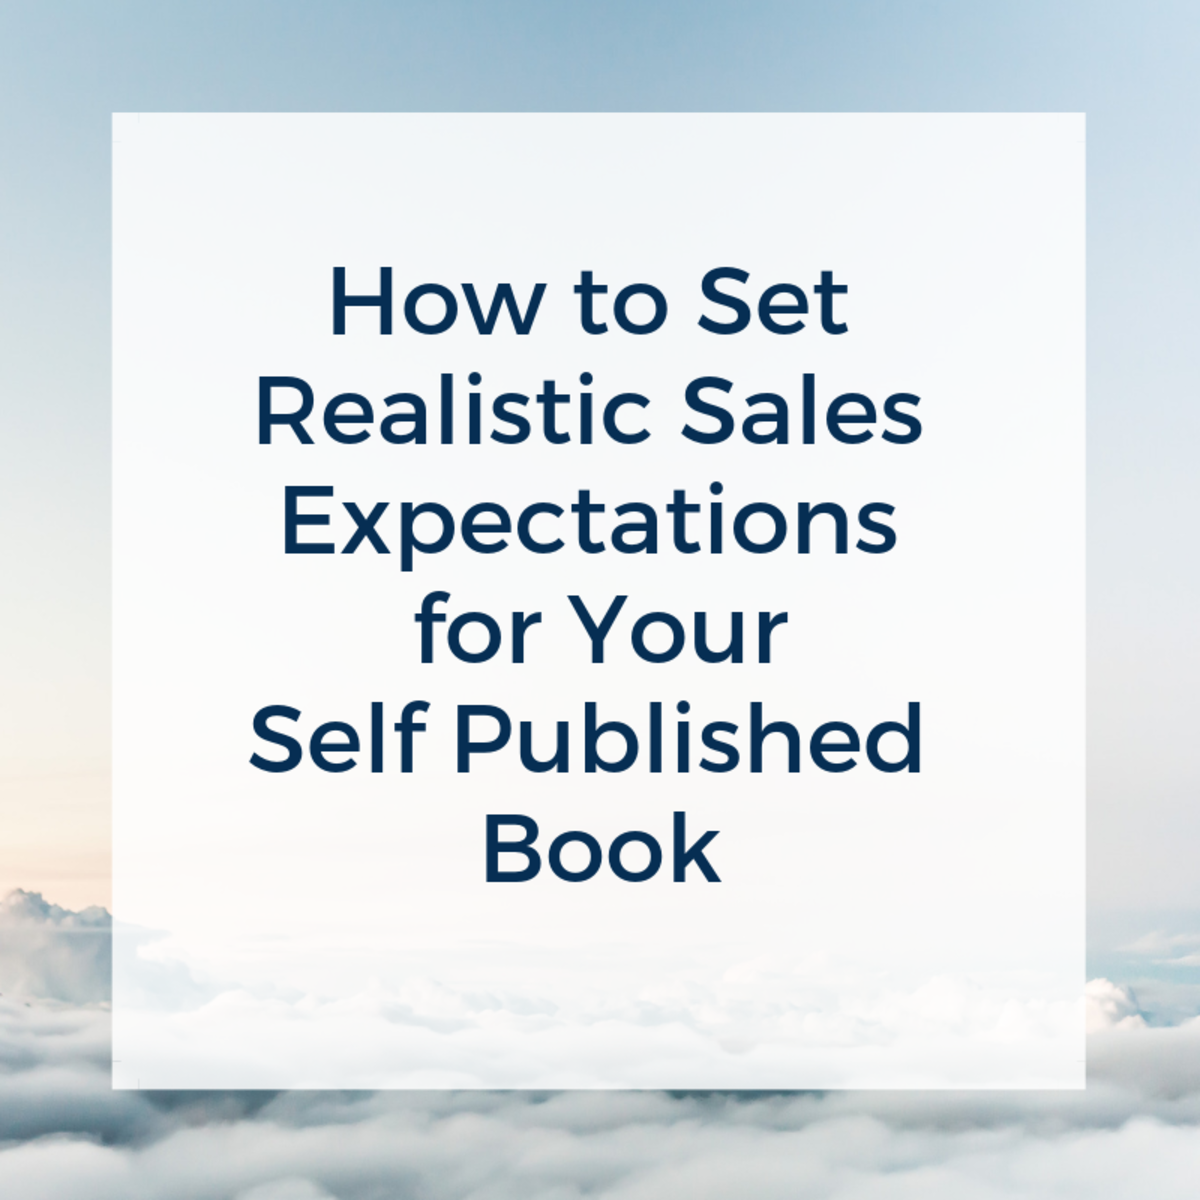 Read on to learn about what to expect sales-wise when publishing a book.